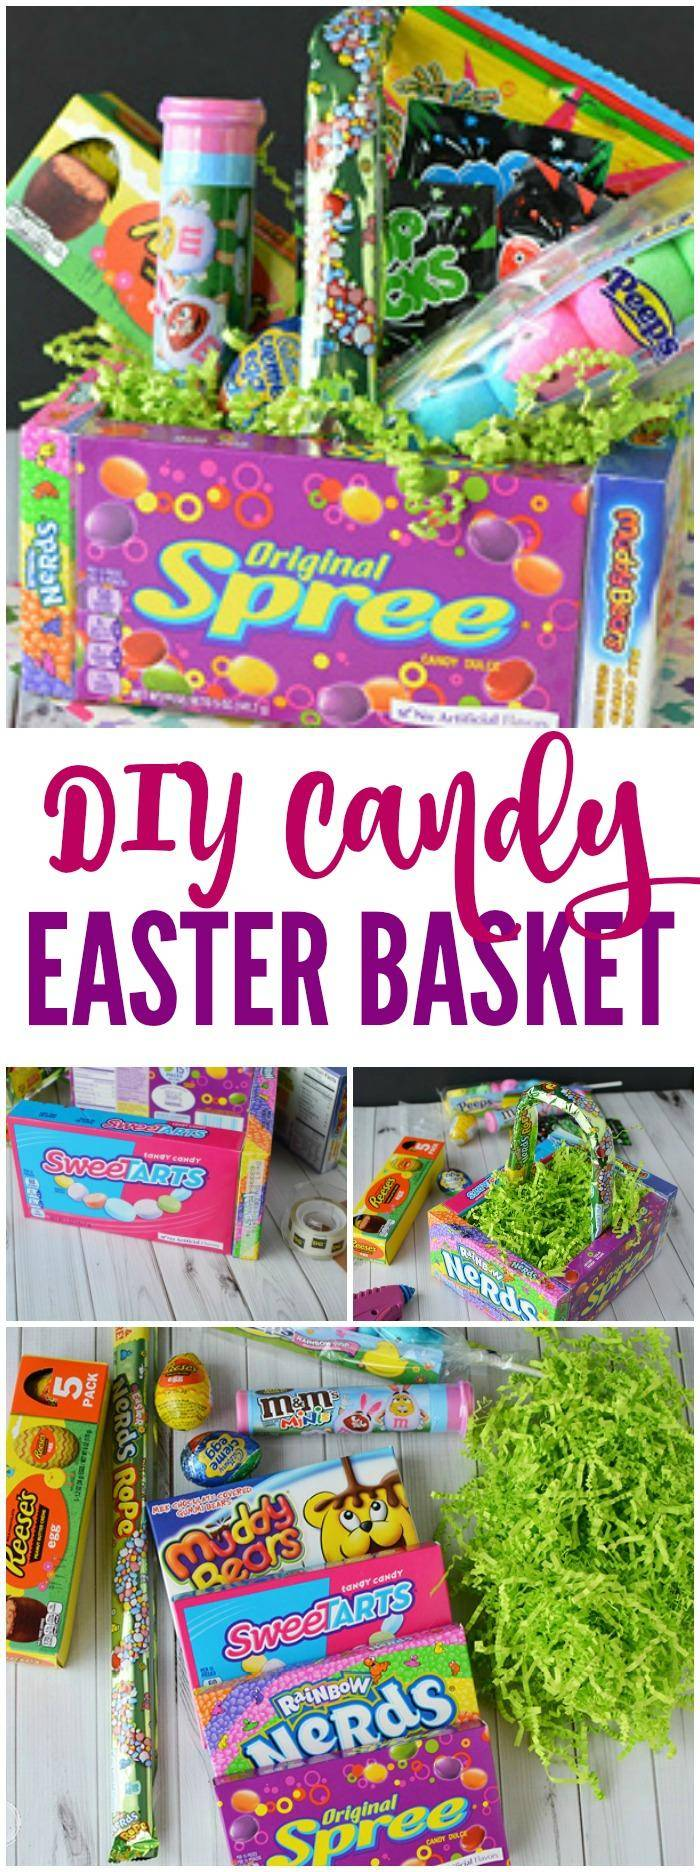 DIY Candy Easter Basket